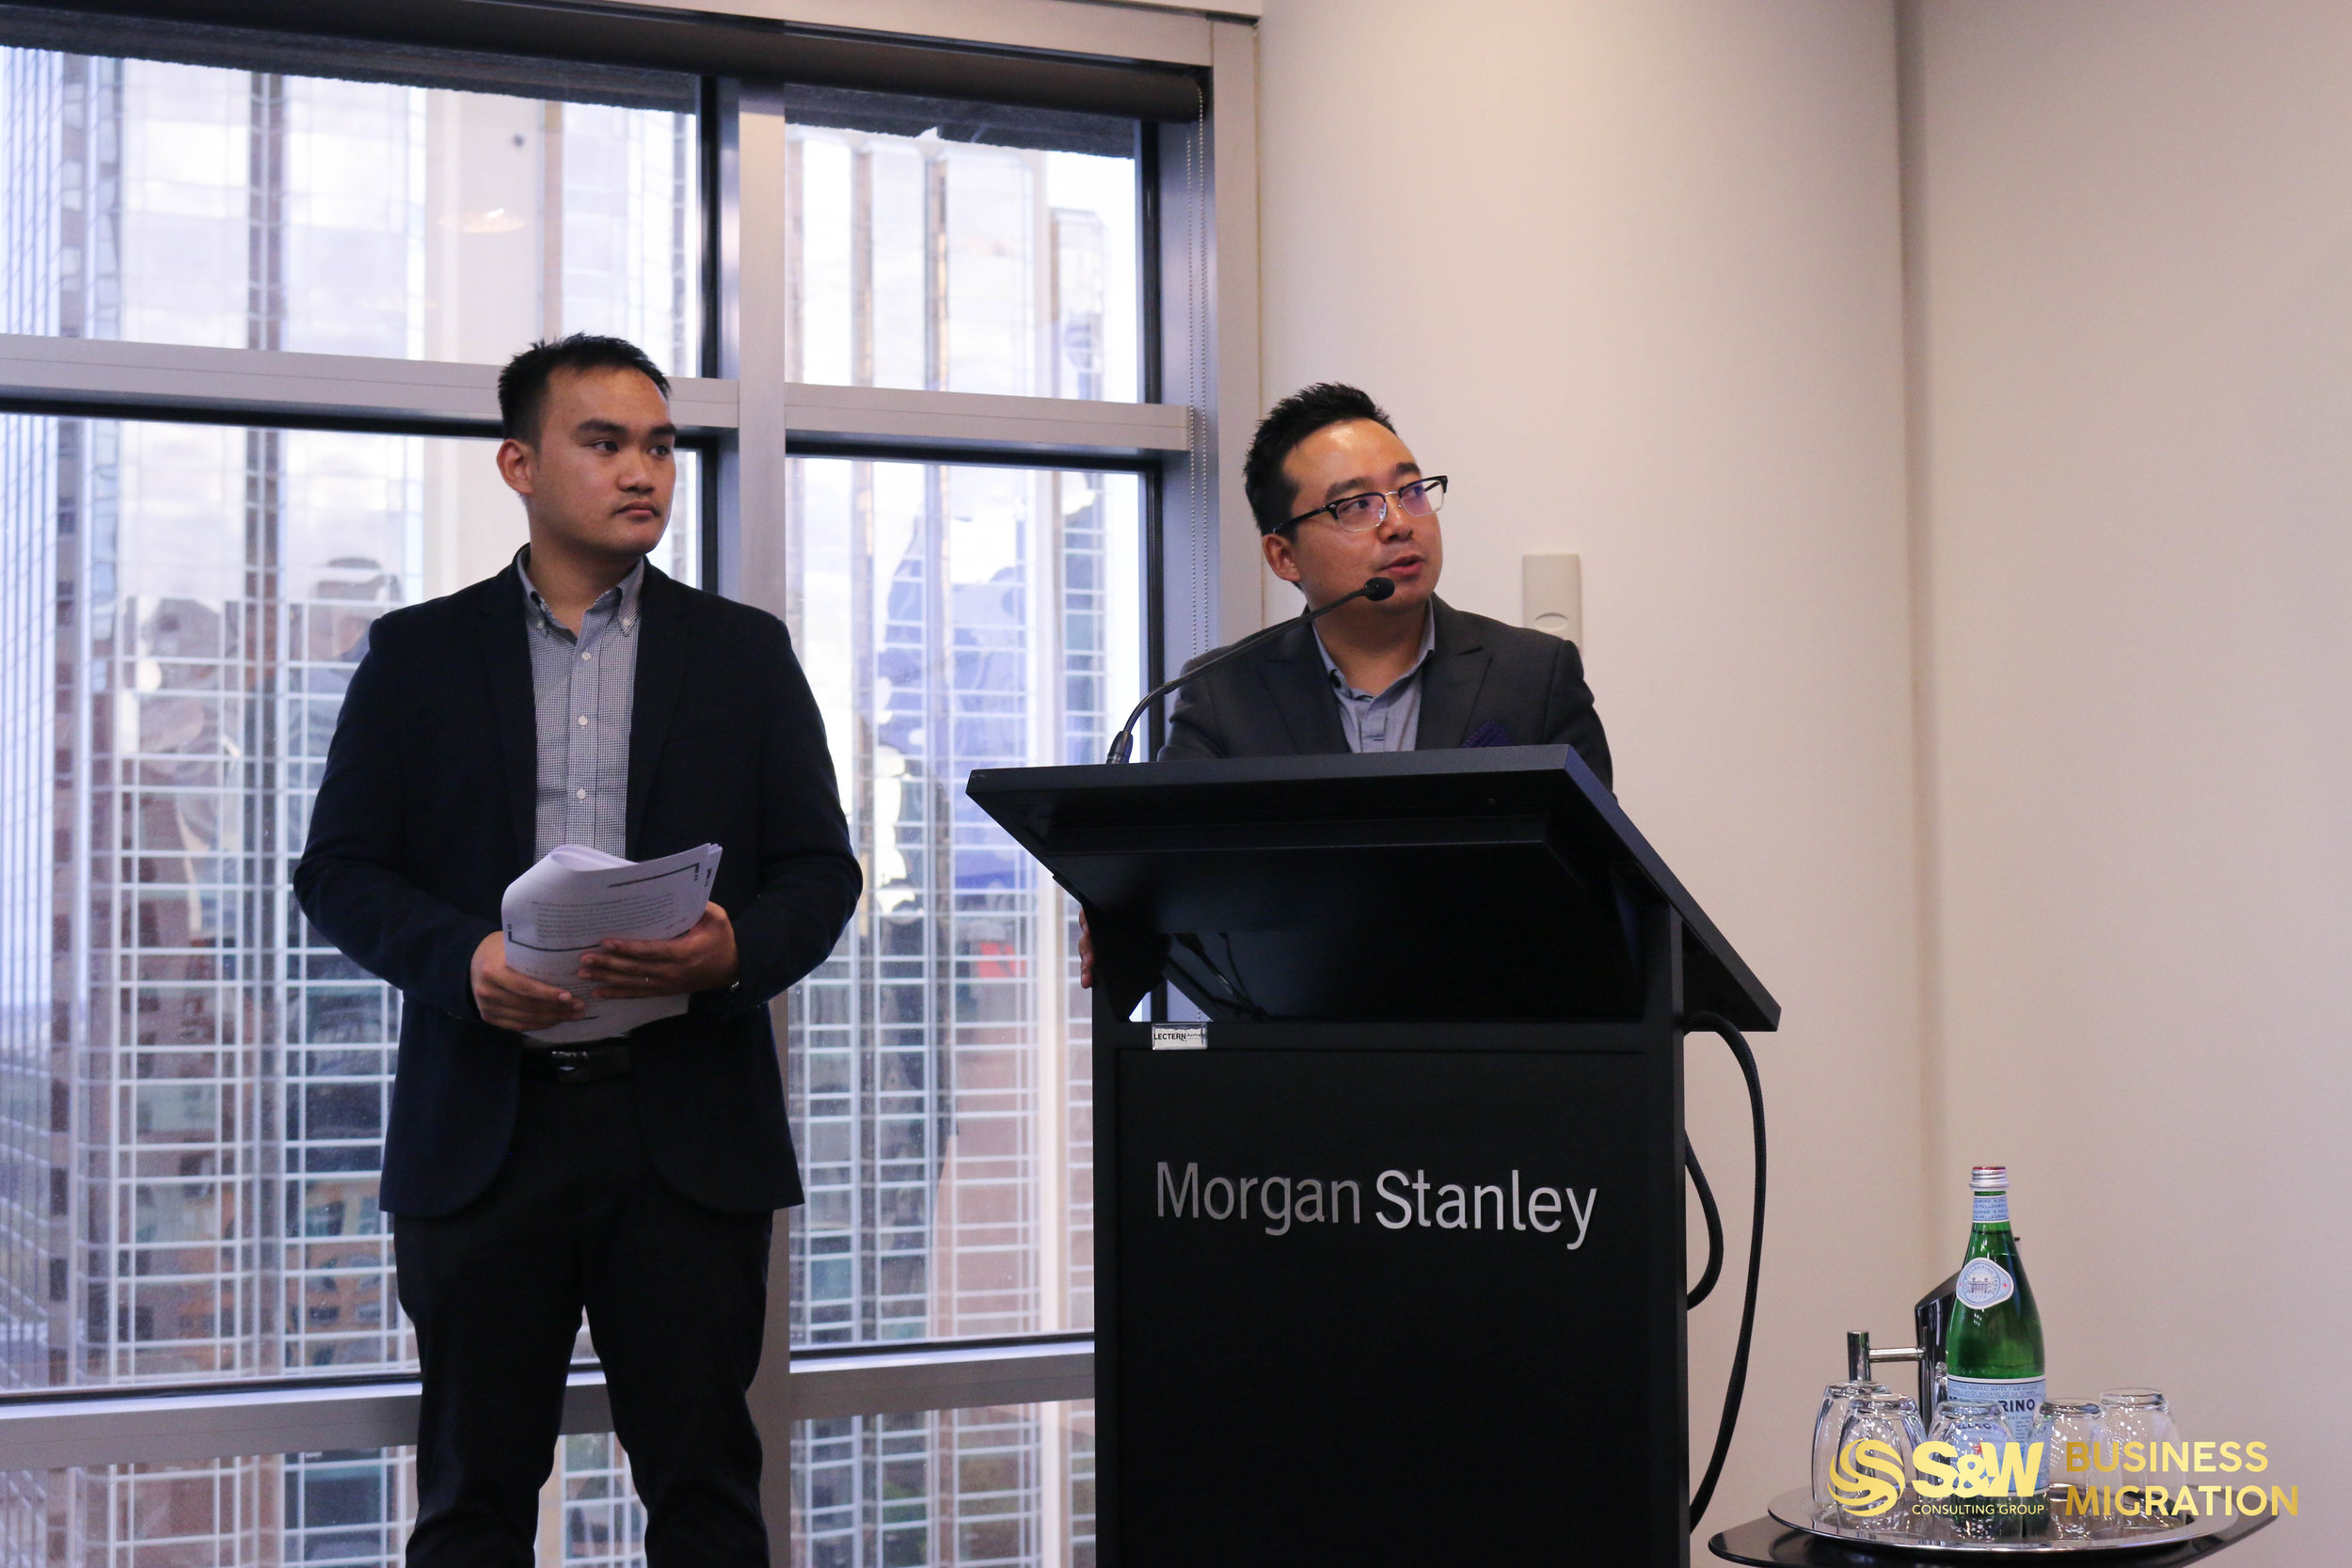 Sean DONG (right) - Director of S&W Consulting Group